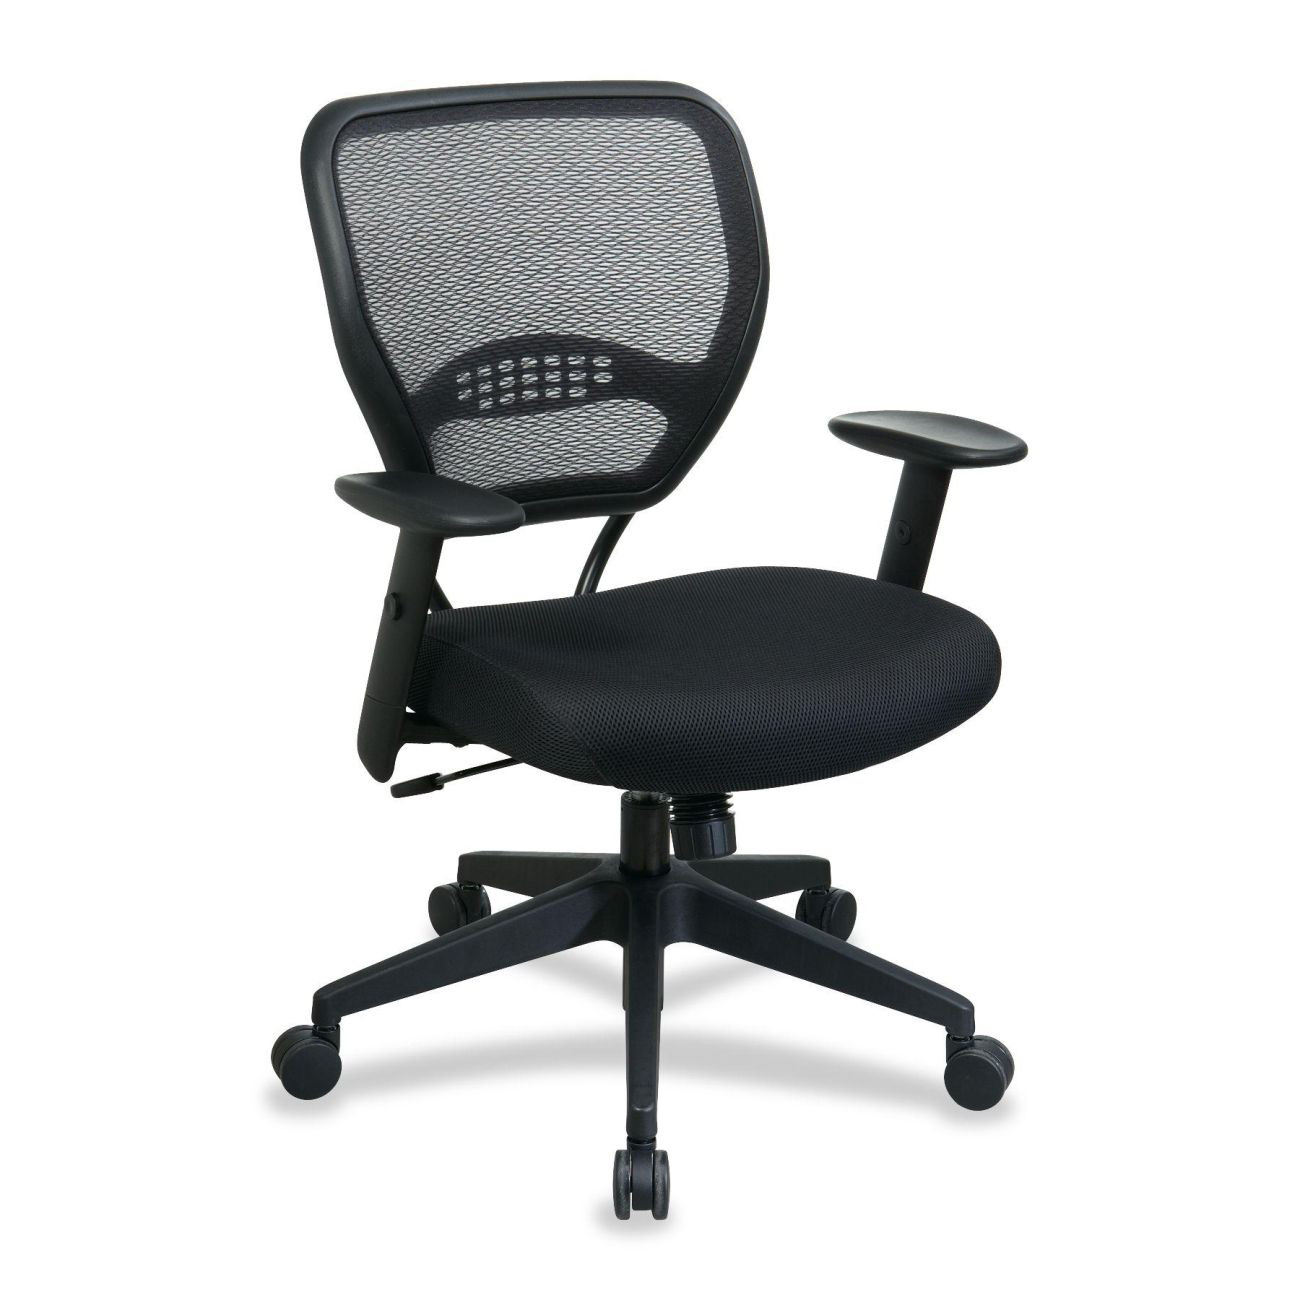 used office chairs second hand office chairs used office furniture. Black Bedroom Furniture Sets. Home Design Ideas